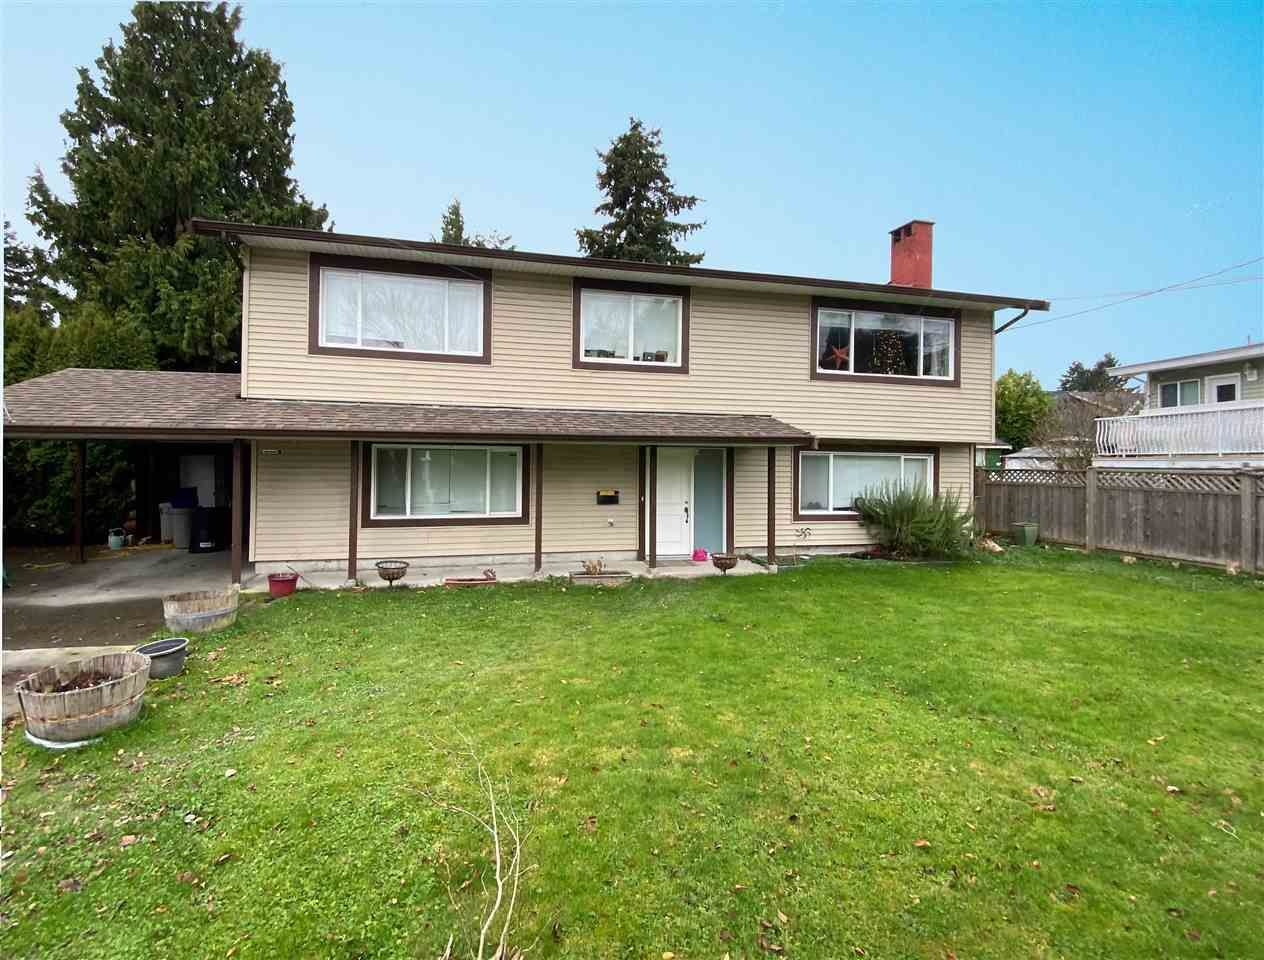 Main Photo: 4283 ARTHUR Drive in Delta: Ladner Elementary House for sale (Ladner)  : MLS®# R2522955